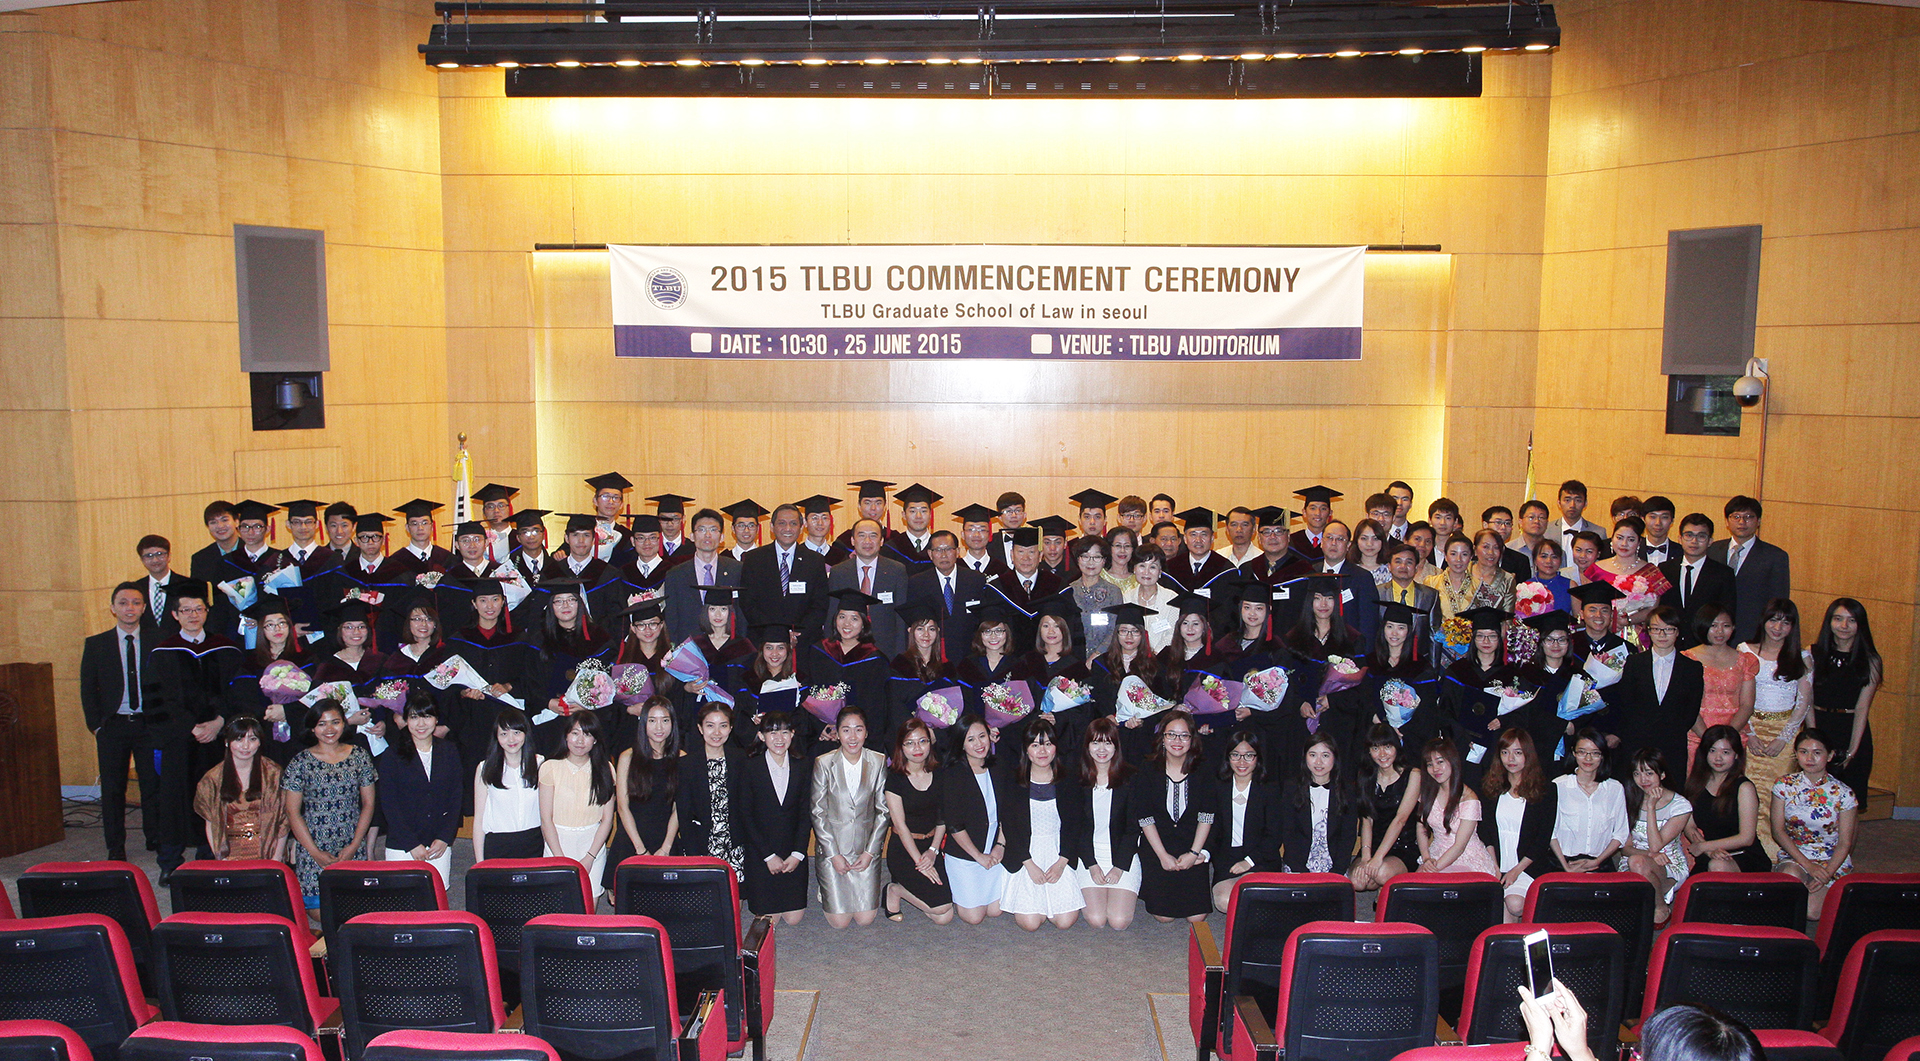 2015 TLBU Commencement Ceremony